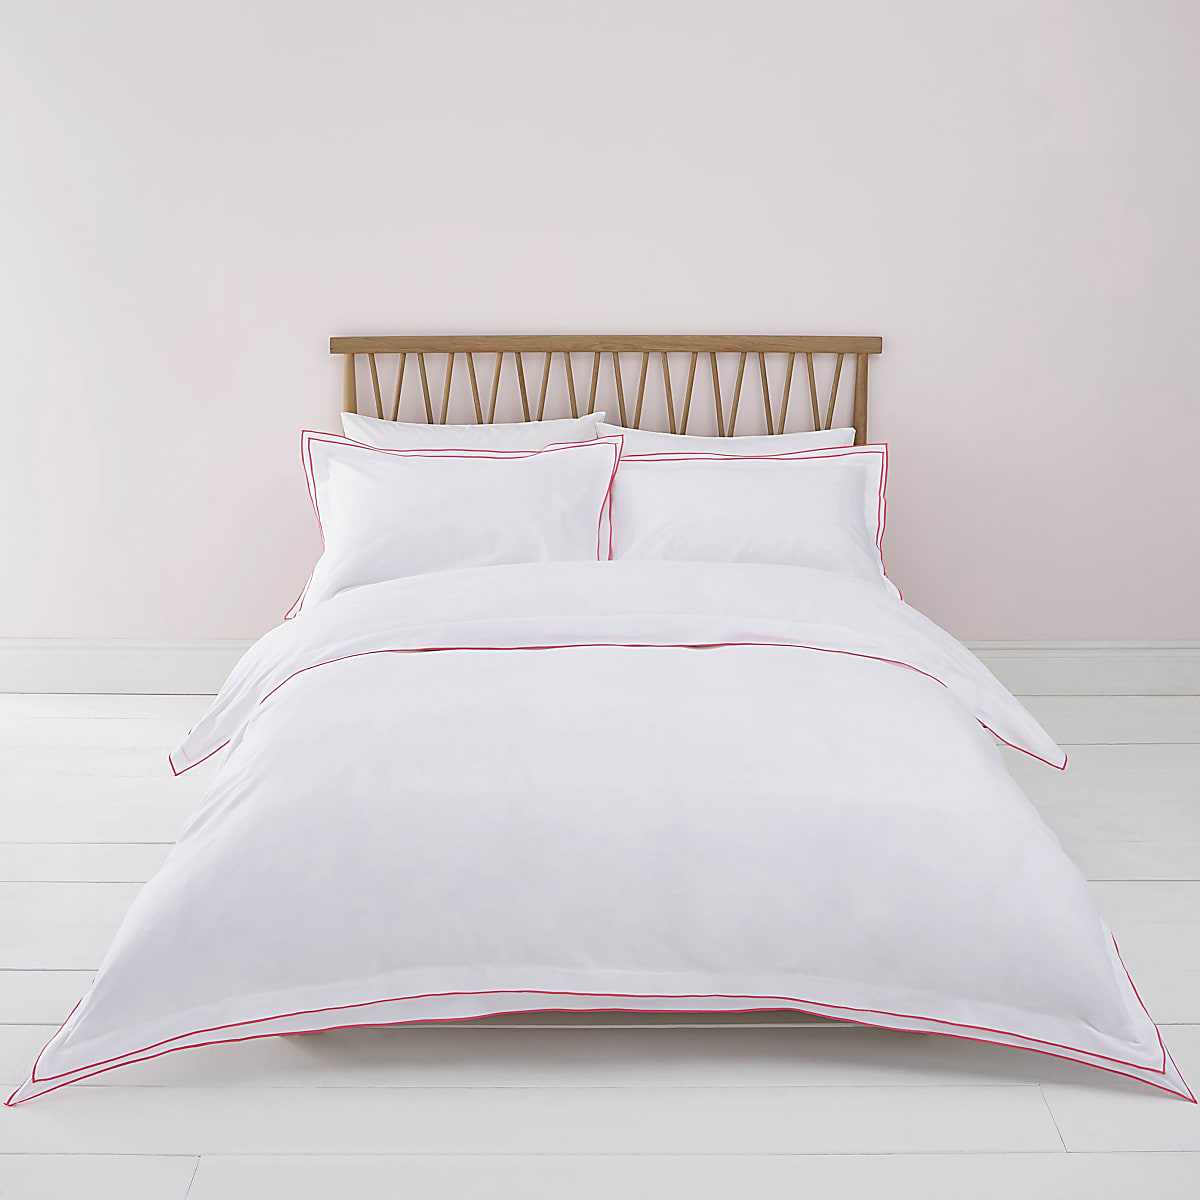 White pink border king duvet bed set